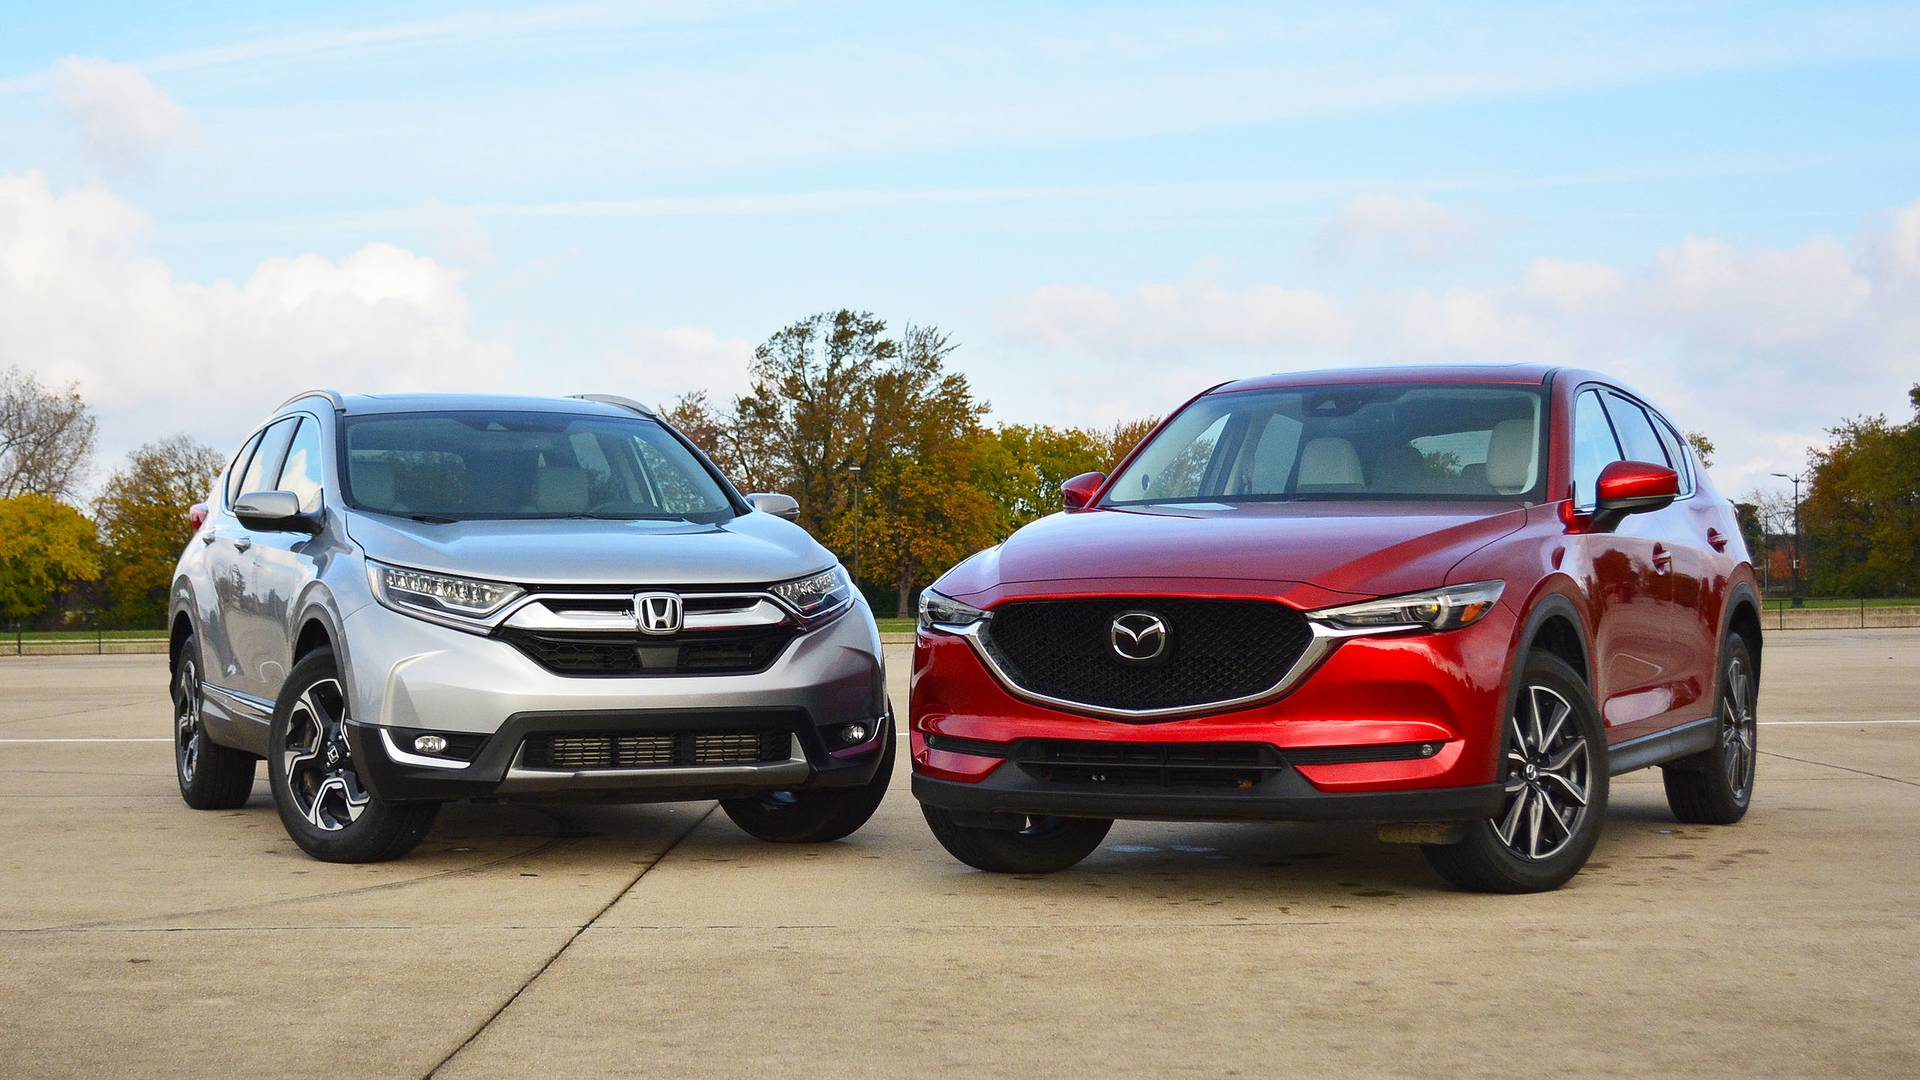 Mazda CX-5: Competing vs. Honda CR-V